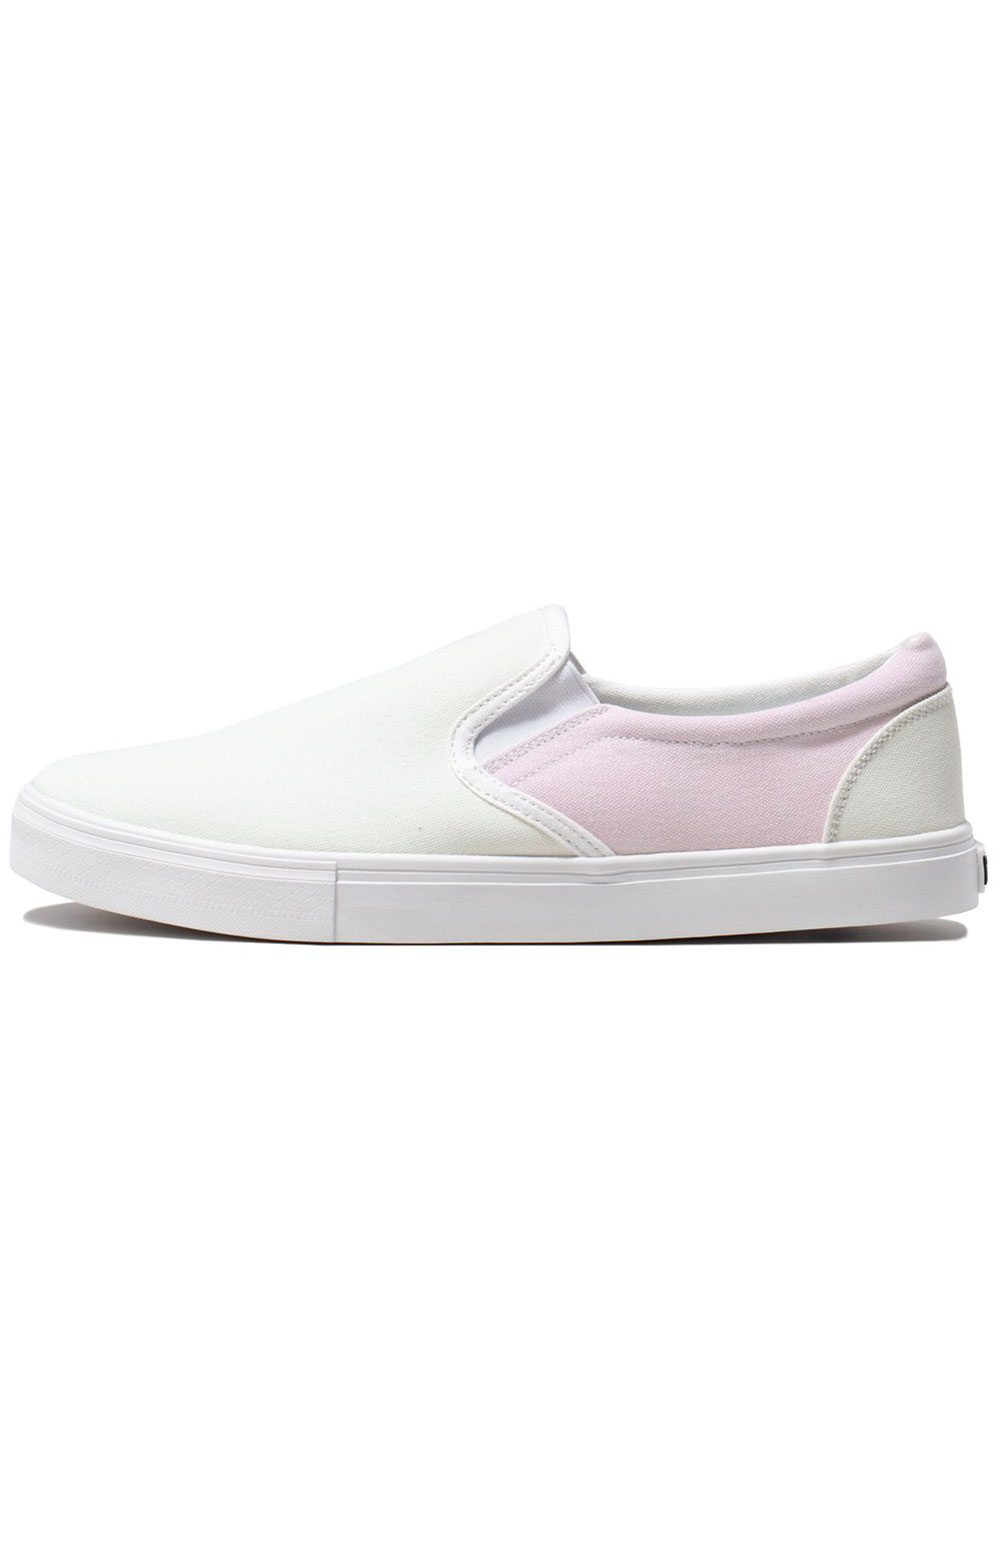 Lord Nermal UV Activated Slip-On Shoes - Blue/Fuschia 4